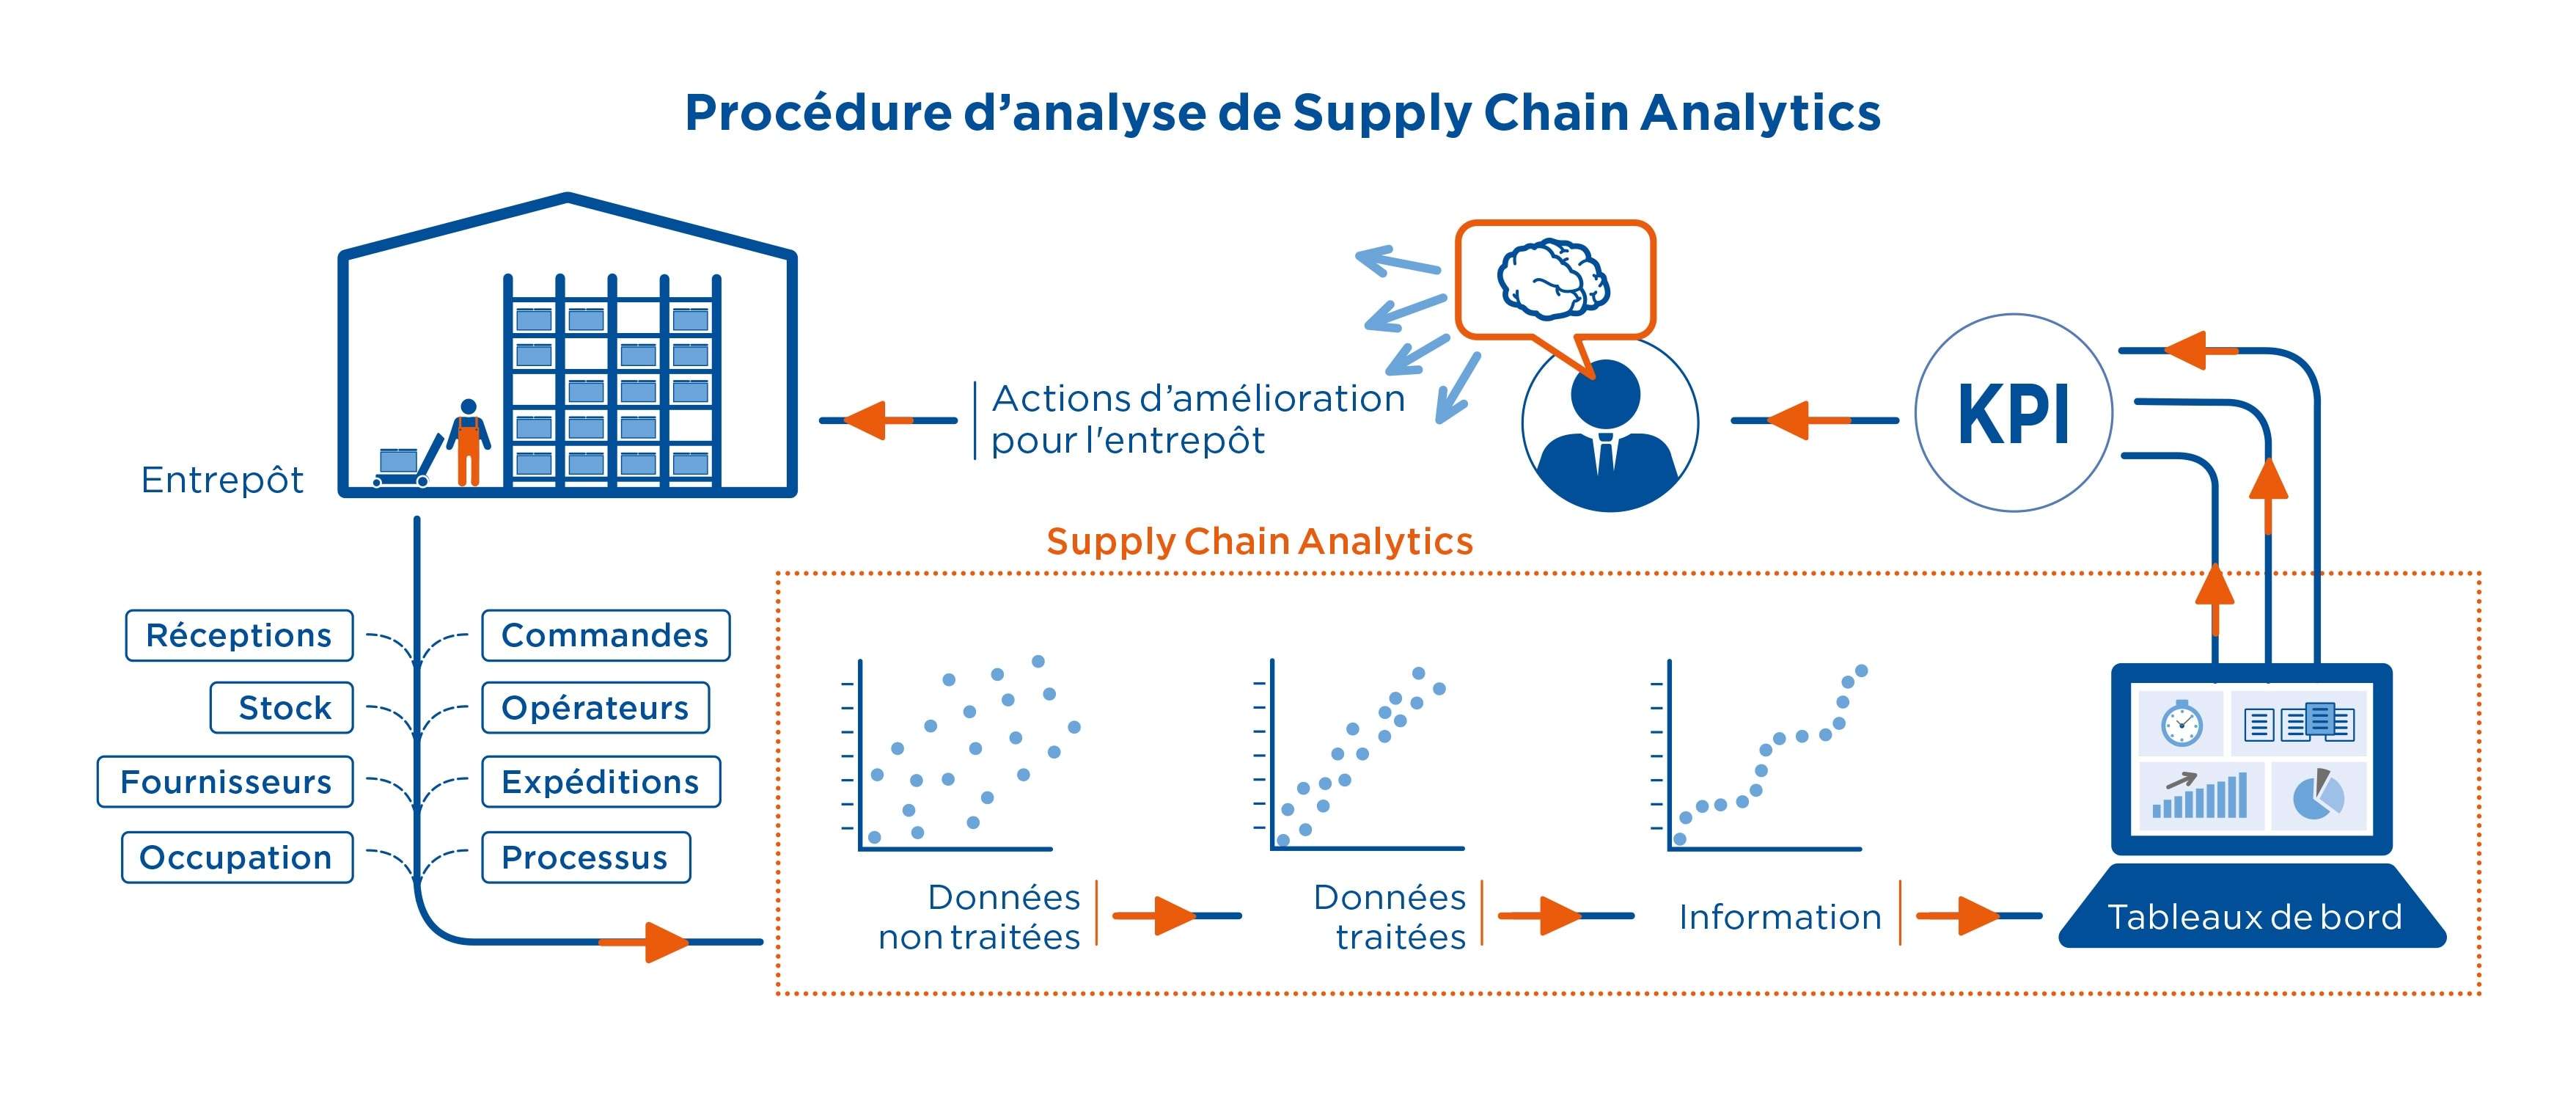 Proccédure d'analyse de Supply Chain Analytics